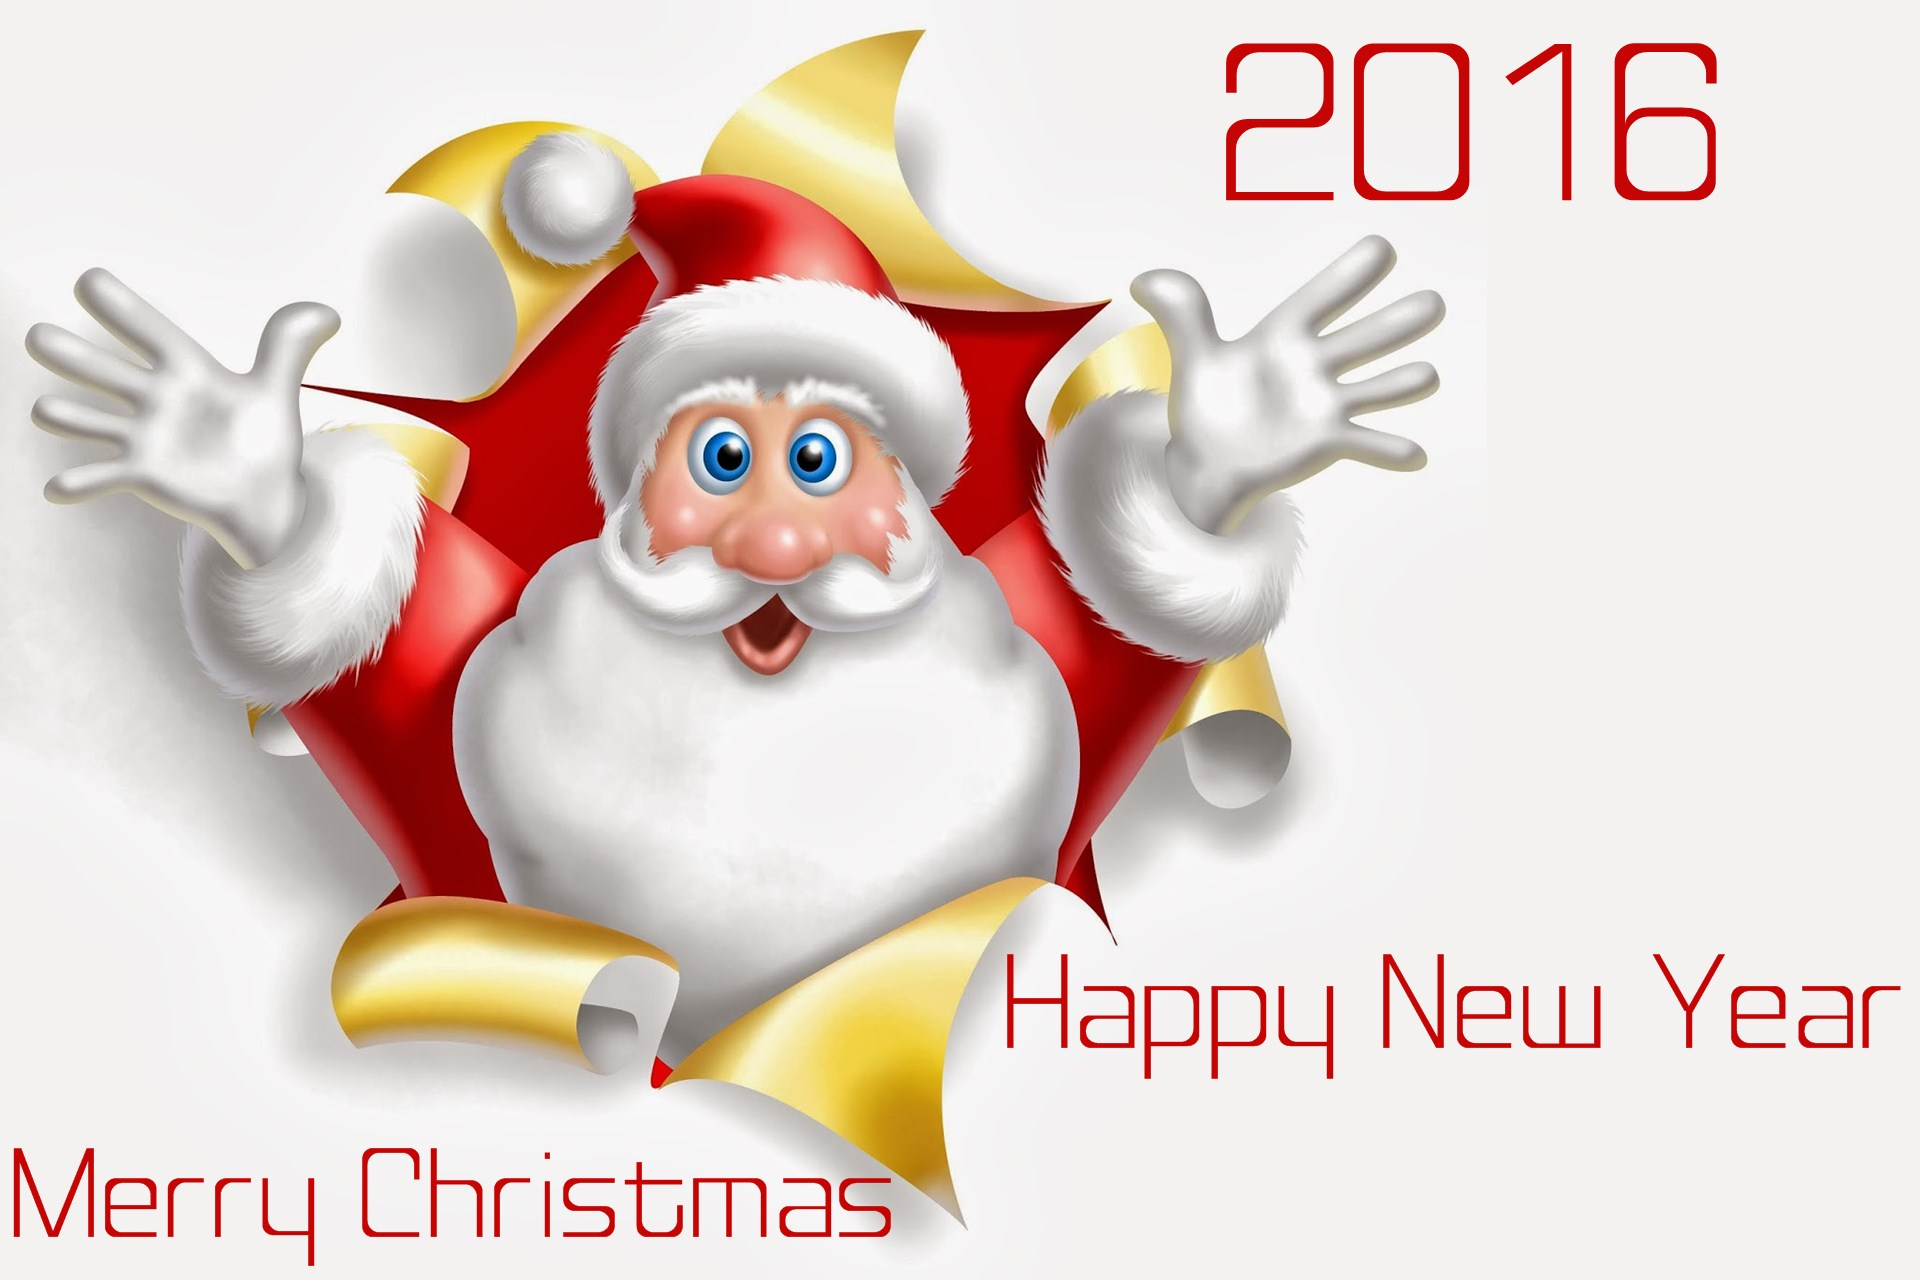 Merry Christmas Wallpapers and Images 2015 http://www.